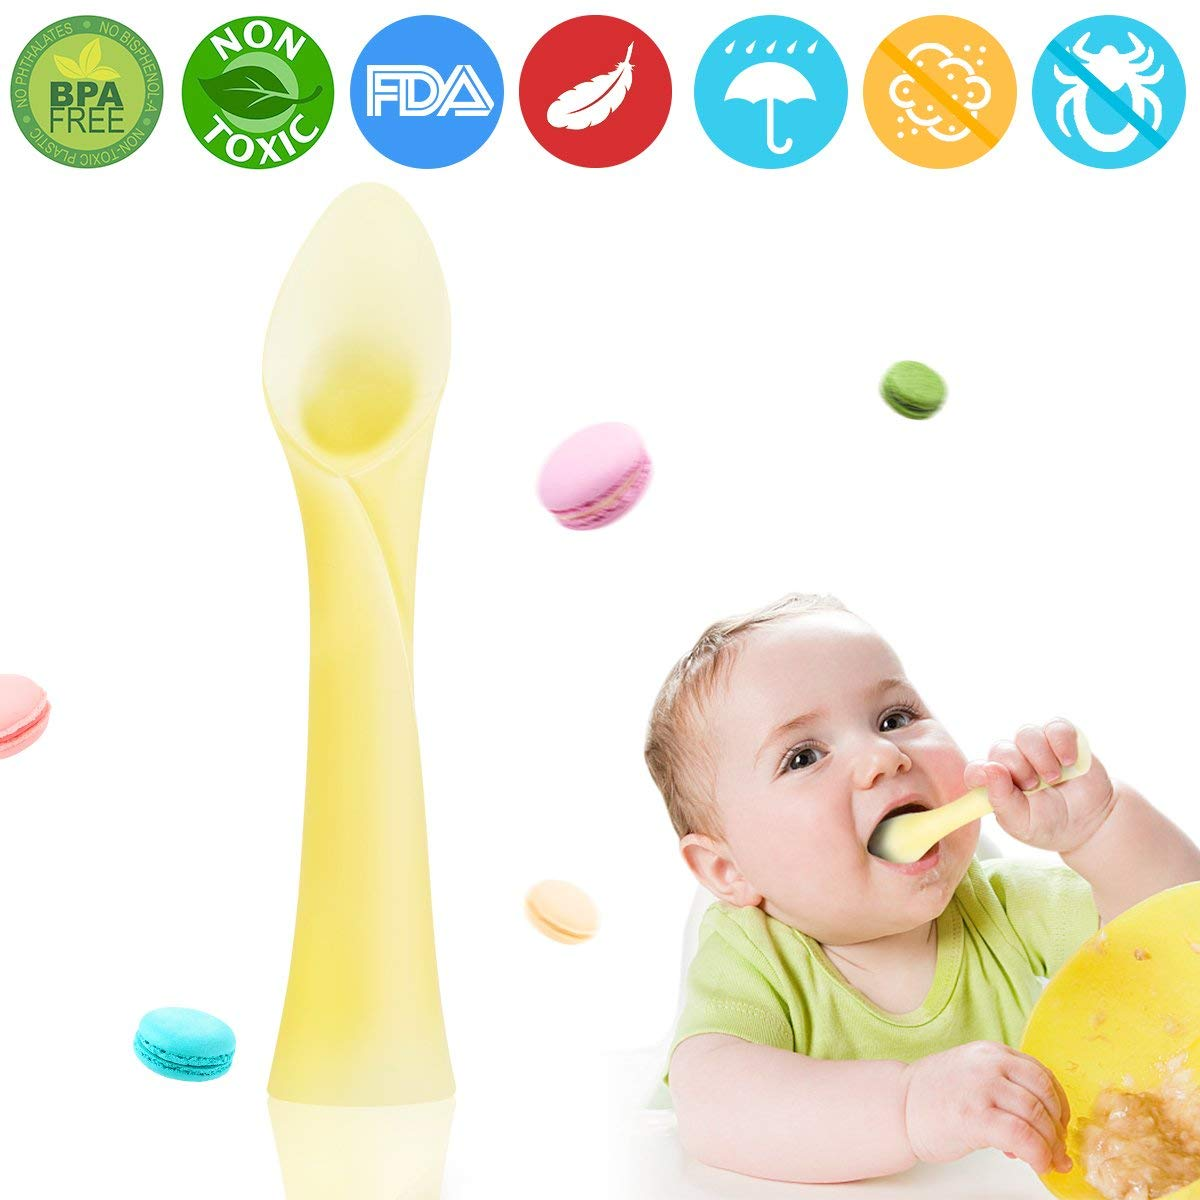 Baby Feeding Spoon Soft Tip Silicone Infant Spoon Feeder Safety Temperature Sensing Spoon Gum-Friendly for First Stage Babies Great Infant Gift Set 2Pcs, Green